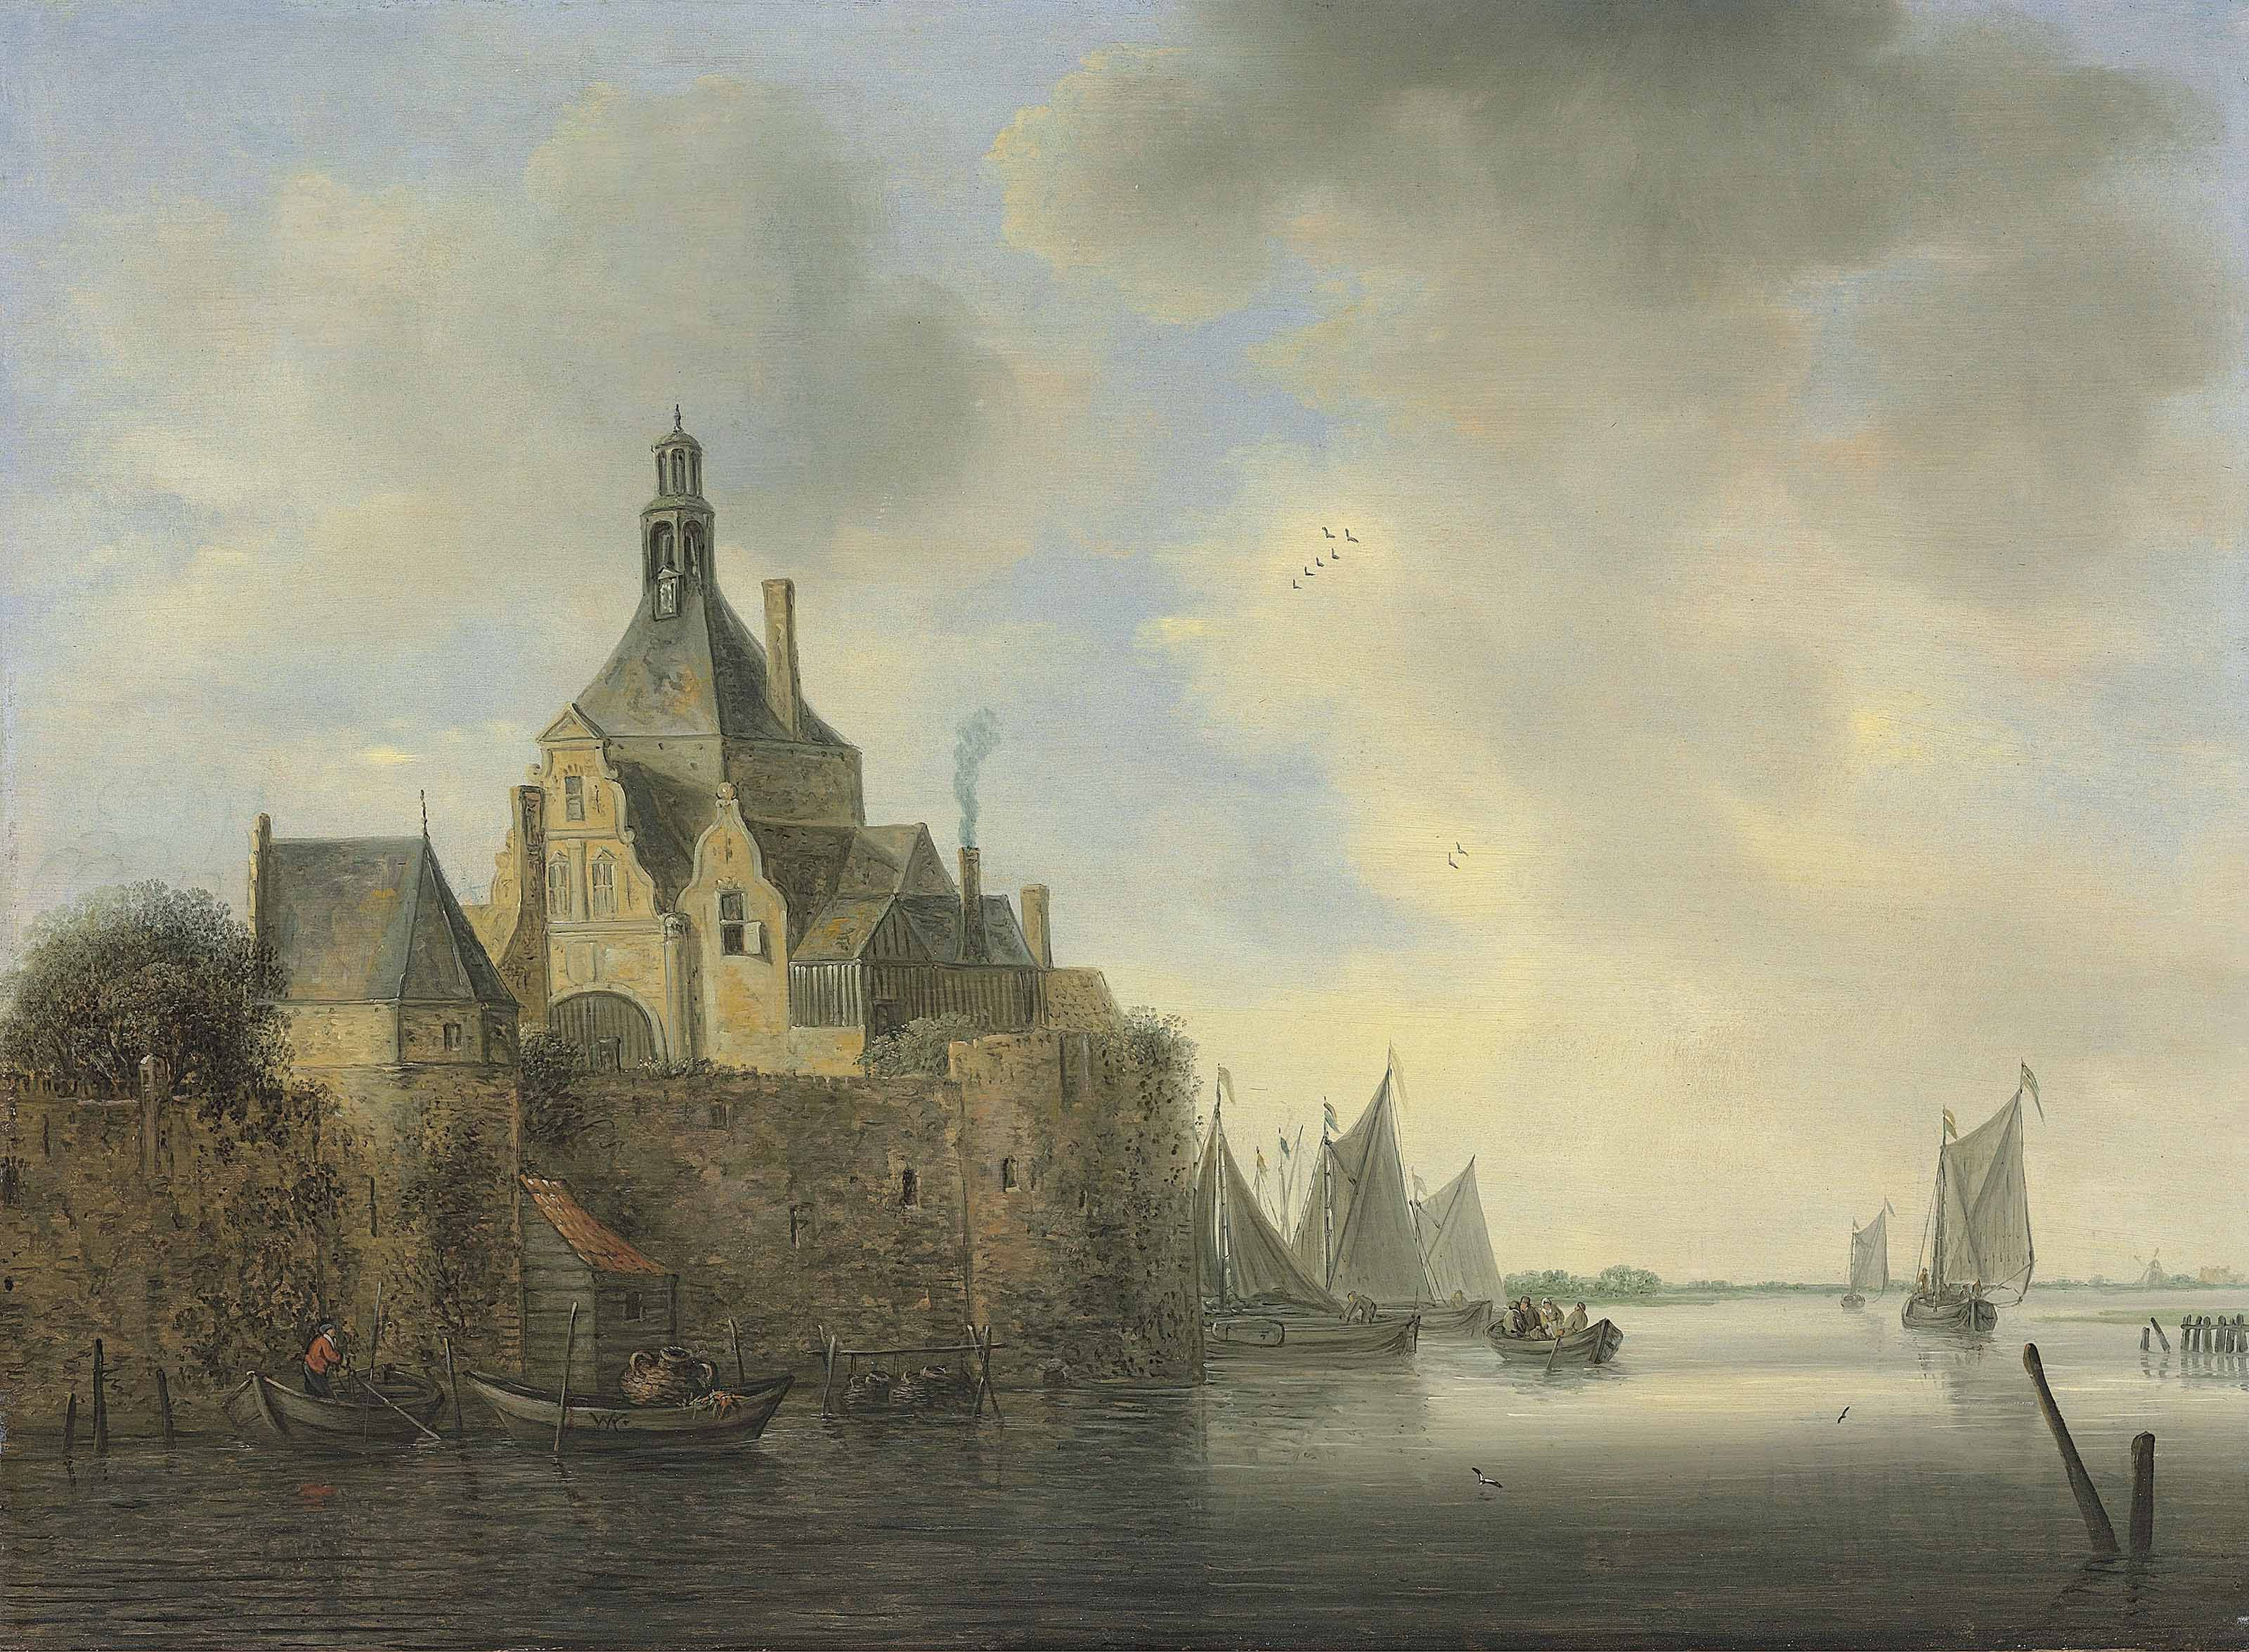 A seascape with boats by a fortified village